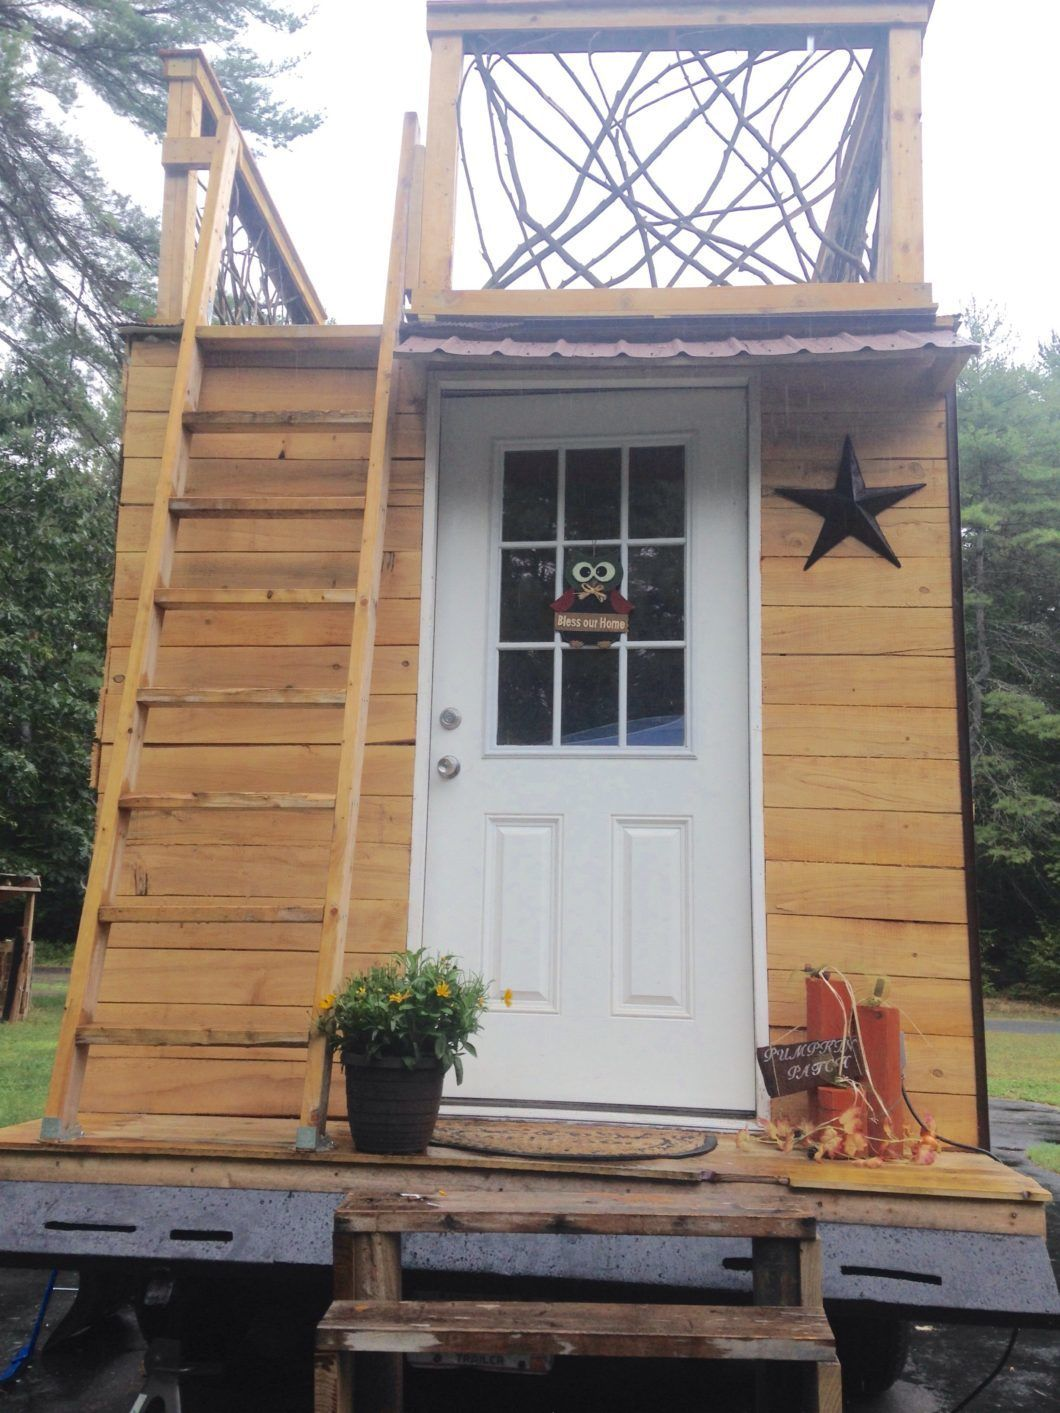 Awesome Affordable Tiny Houses 10 Small Homes For 15 000 Or Less Home Interior And Landscaping Ologienasavecom